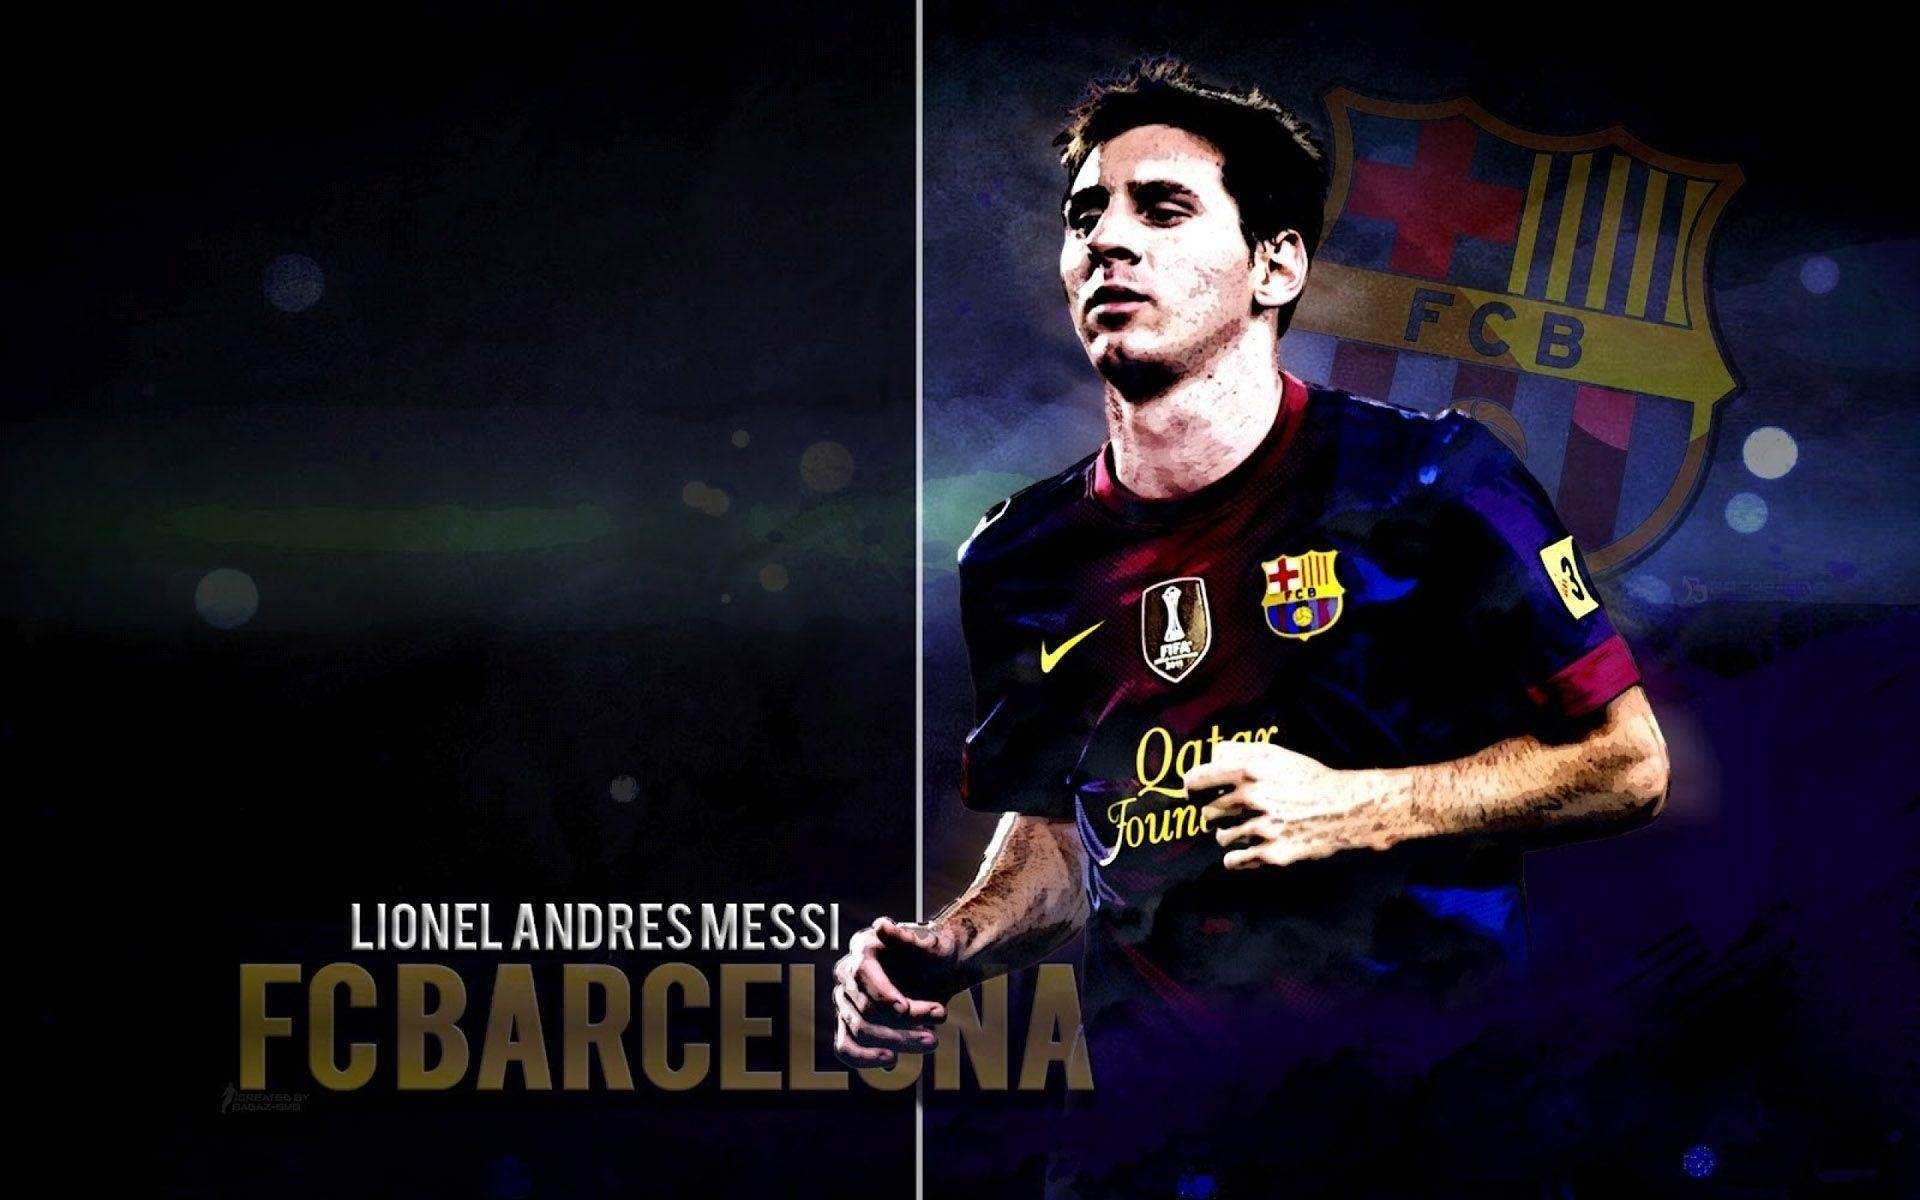 1920x1200 Lionel Messi Wallpapers HD download free | HD Wallpapers .